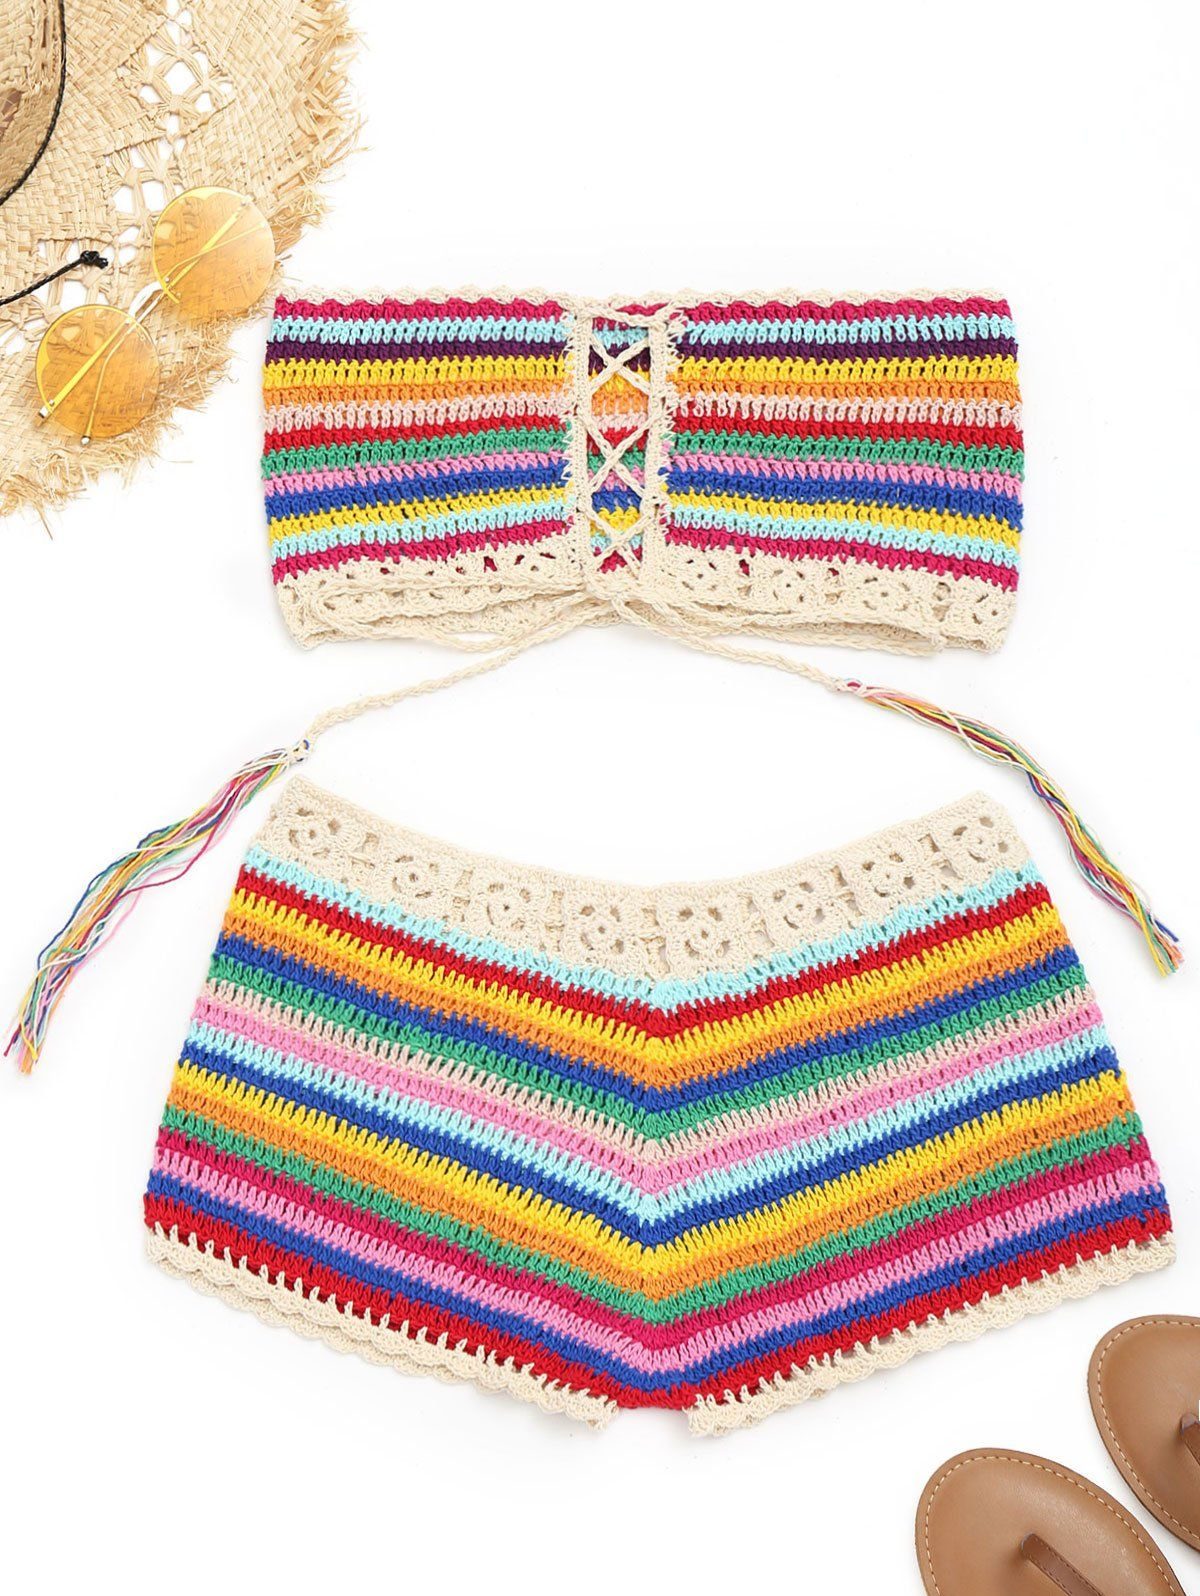 591b8f9214 Colorful Strapless Crochet Top And Shorts Women Beach Cover Up Lace Up  Bikini Stripe Cover Up Summer Crochet Beachwear